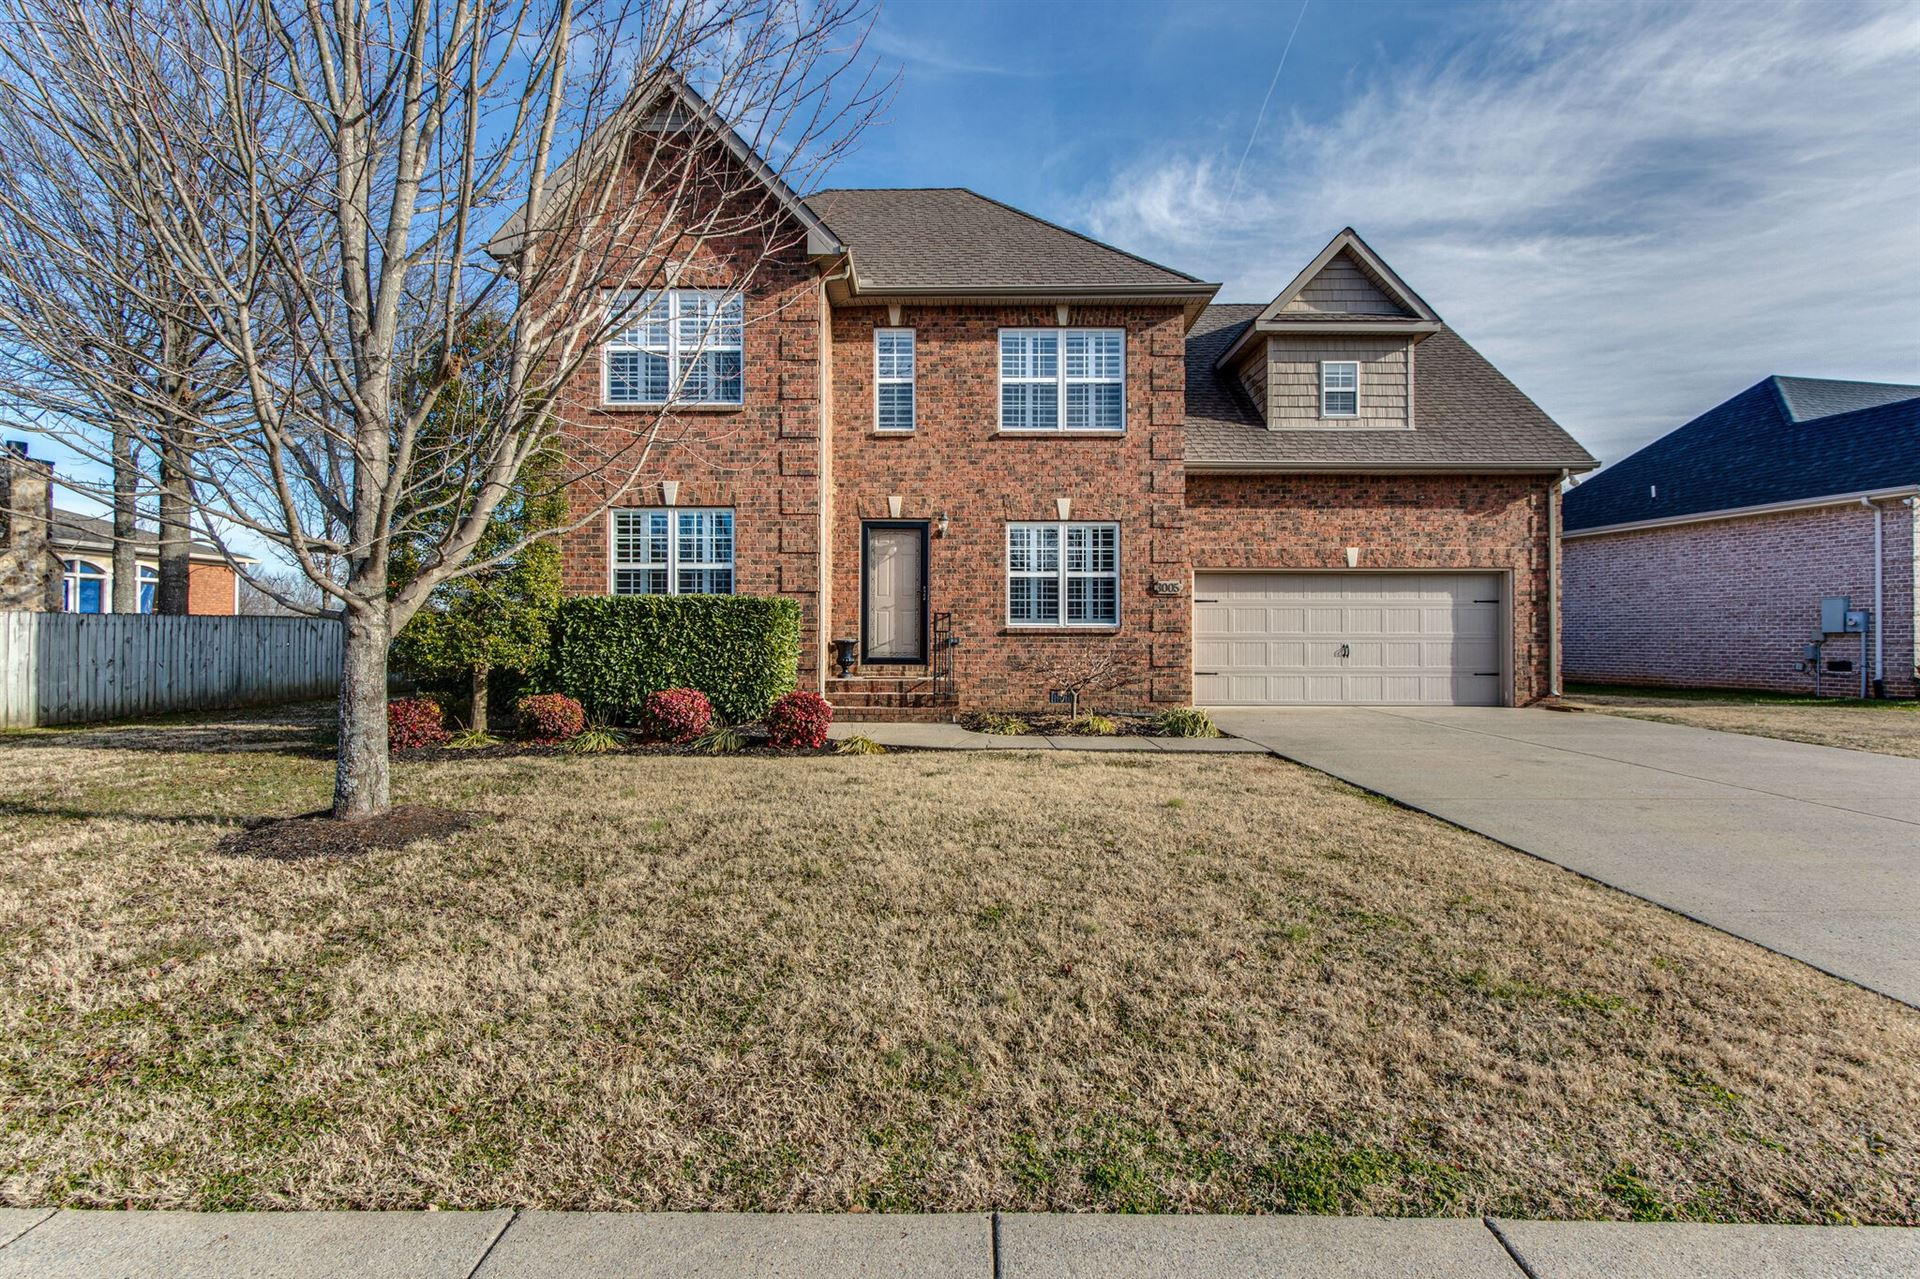 Photo of 3005 Brookside Path, Murfreesboro, TN 37128 (MLS # 2222315)